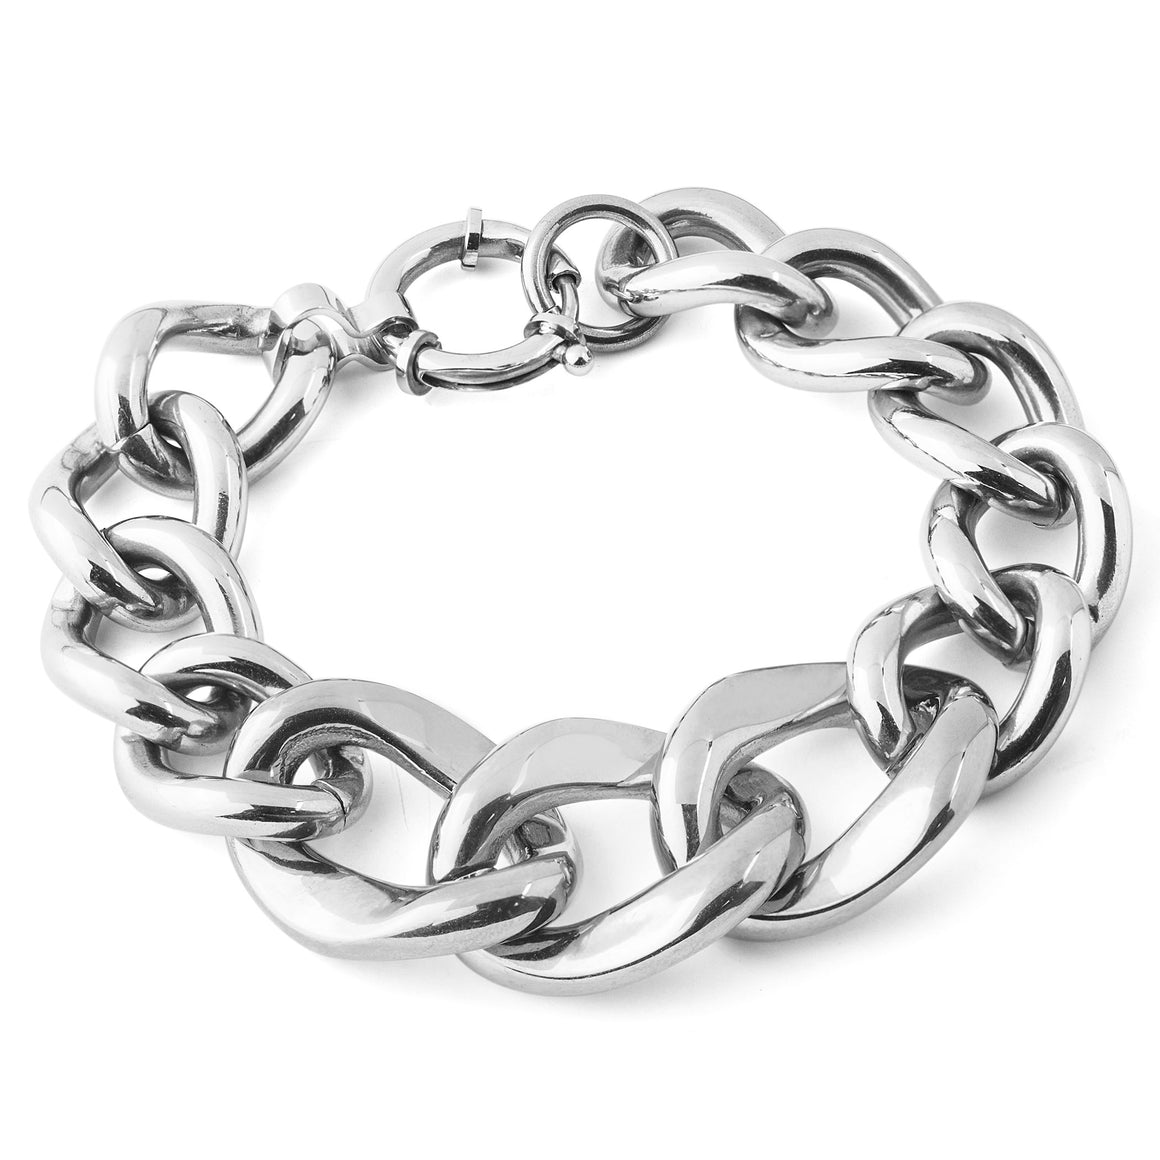 Polished Curb Chain Two-Tone Stainless Steel Link Bracelet (17.5 mm) - 7.5""